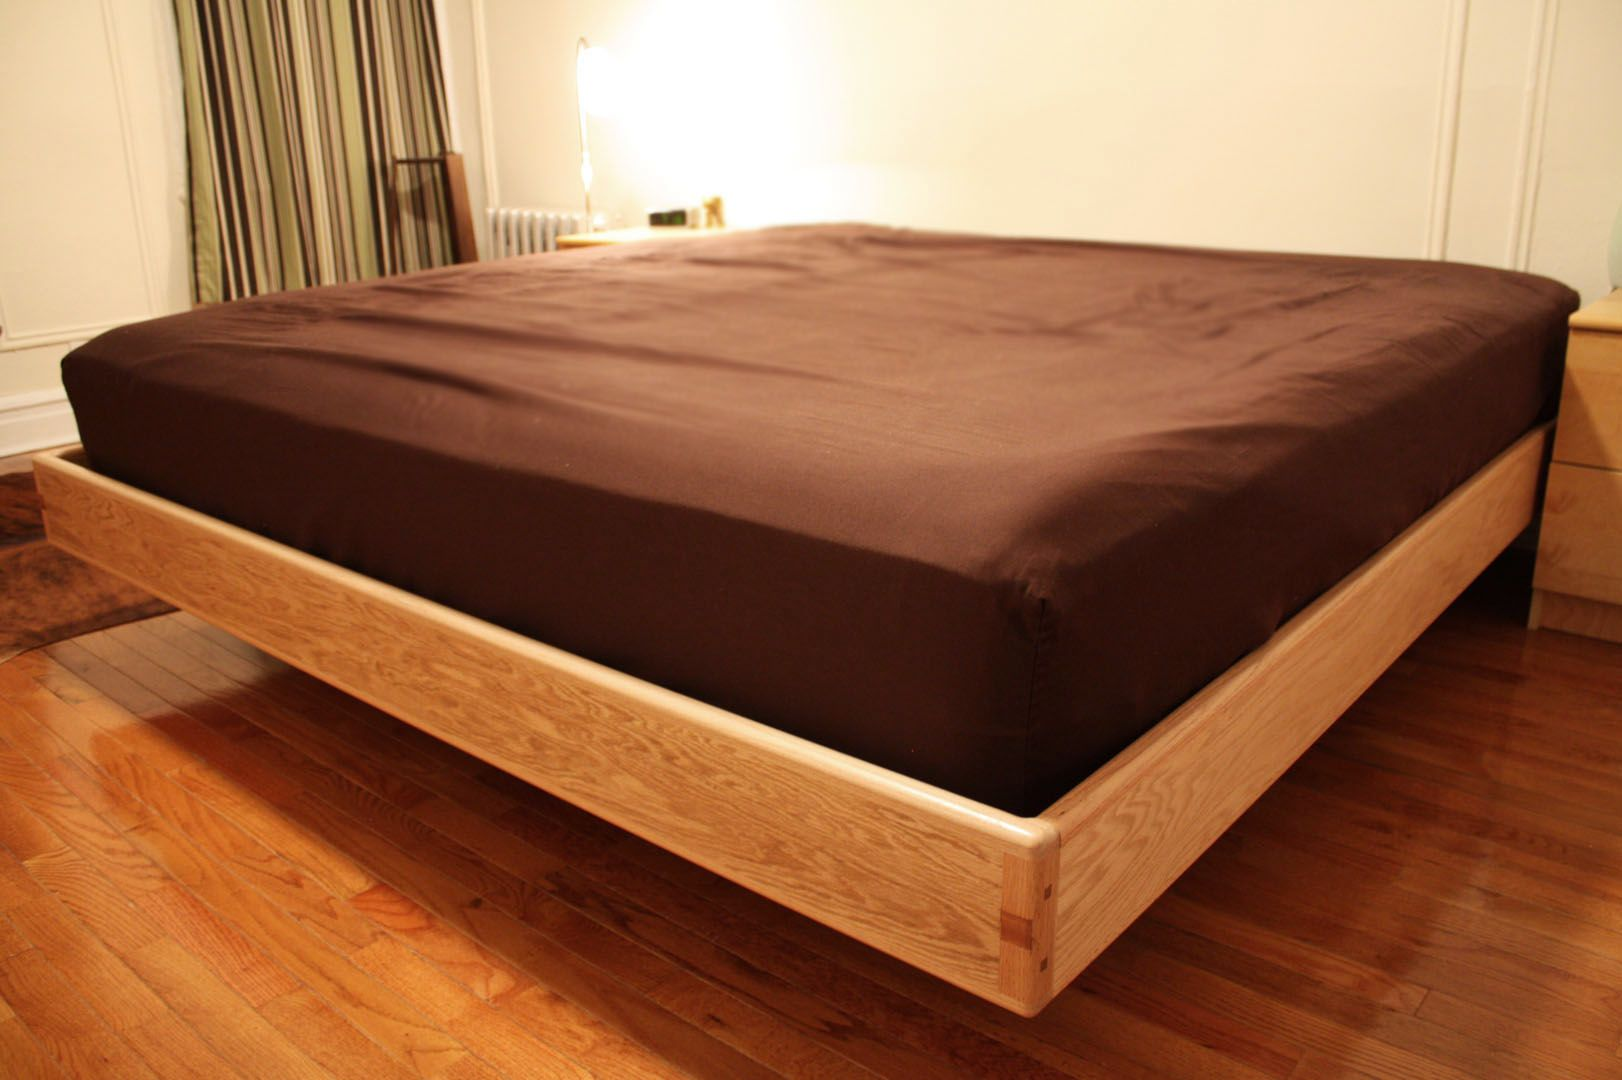 1000+ images about Bedroom on Pinterest | Upholstery, Solid wood ...